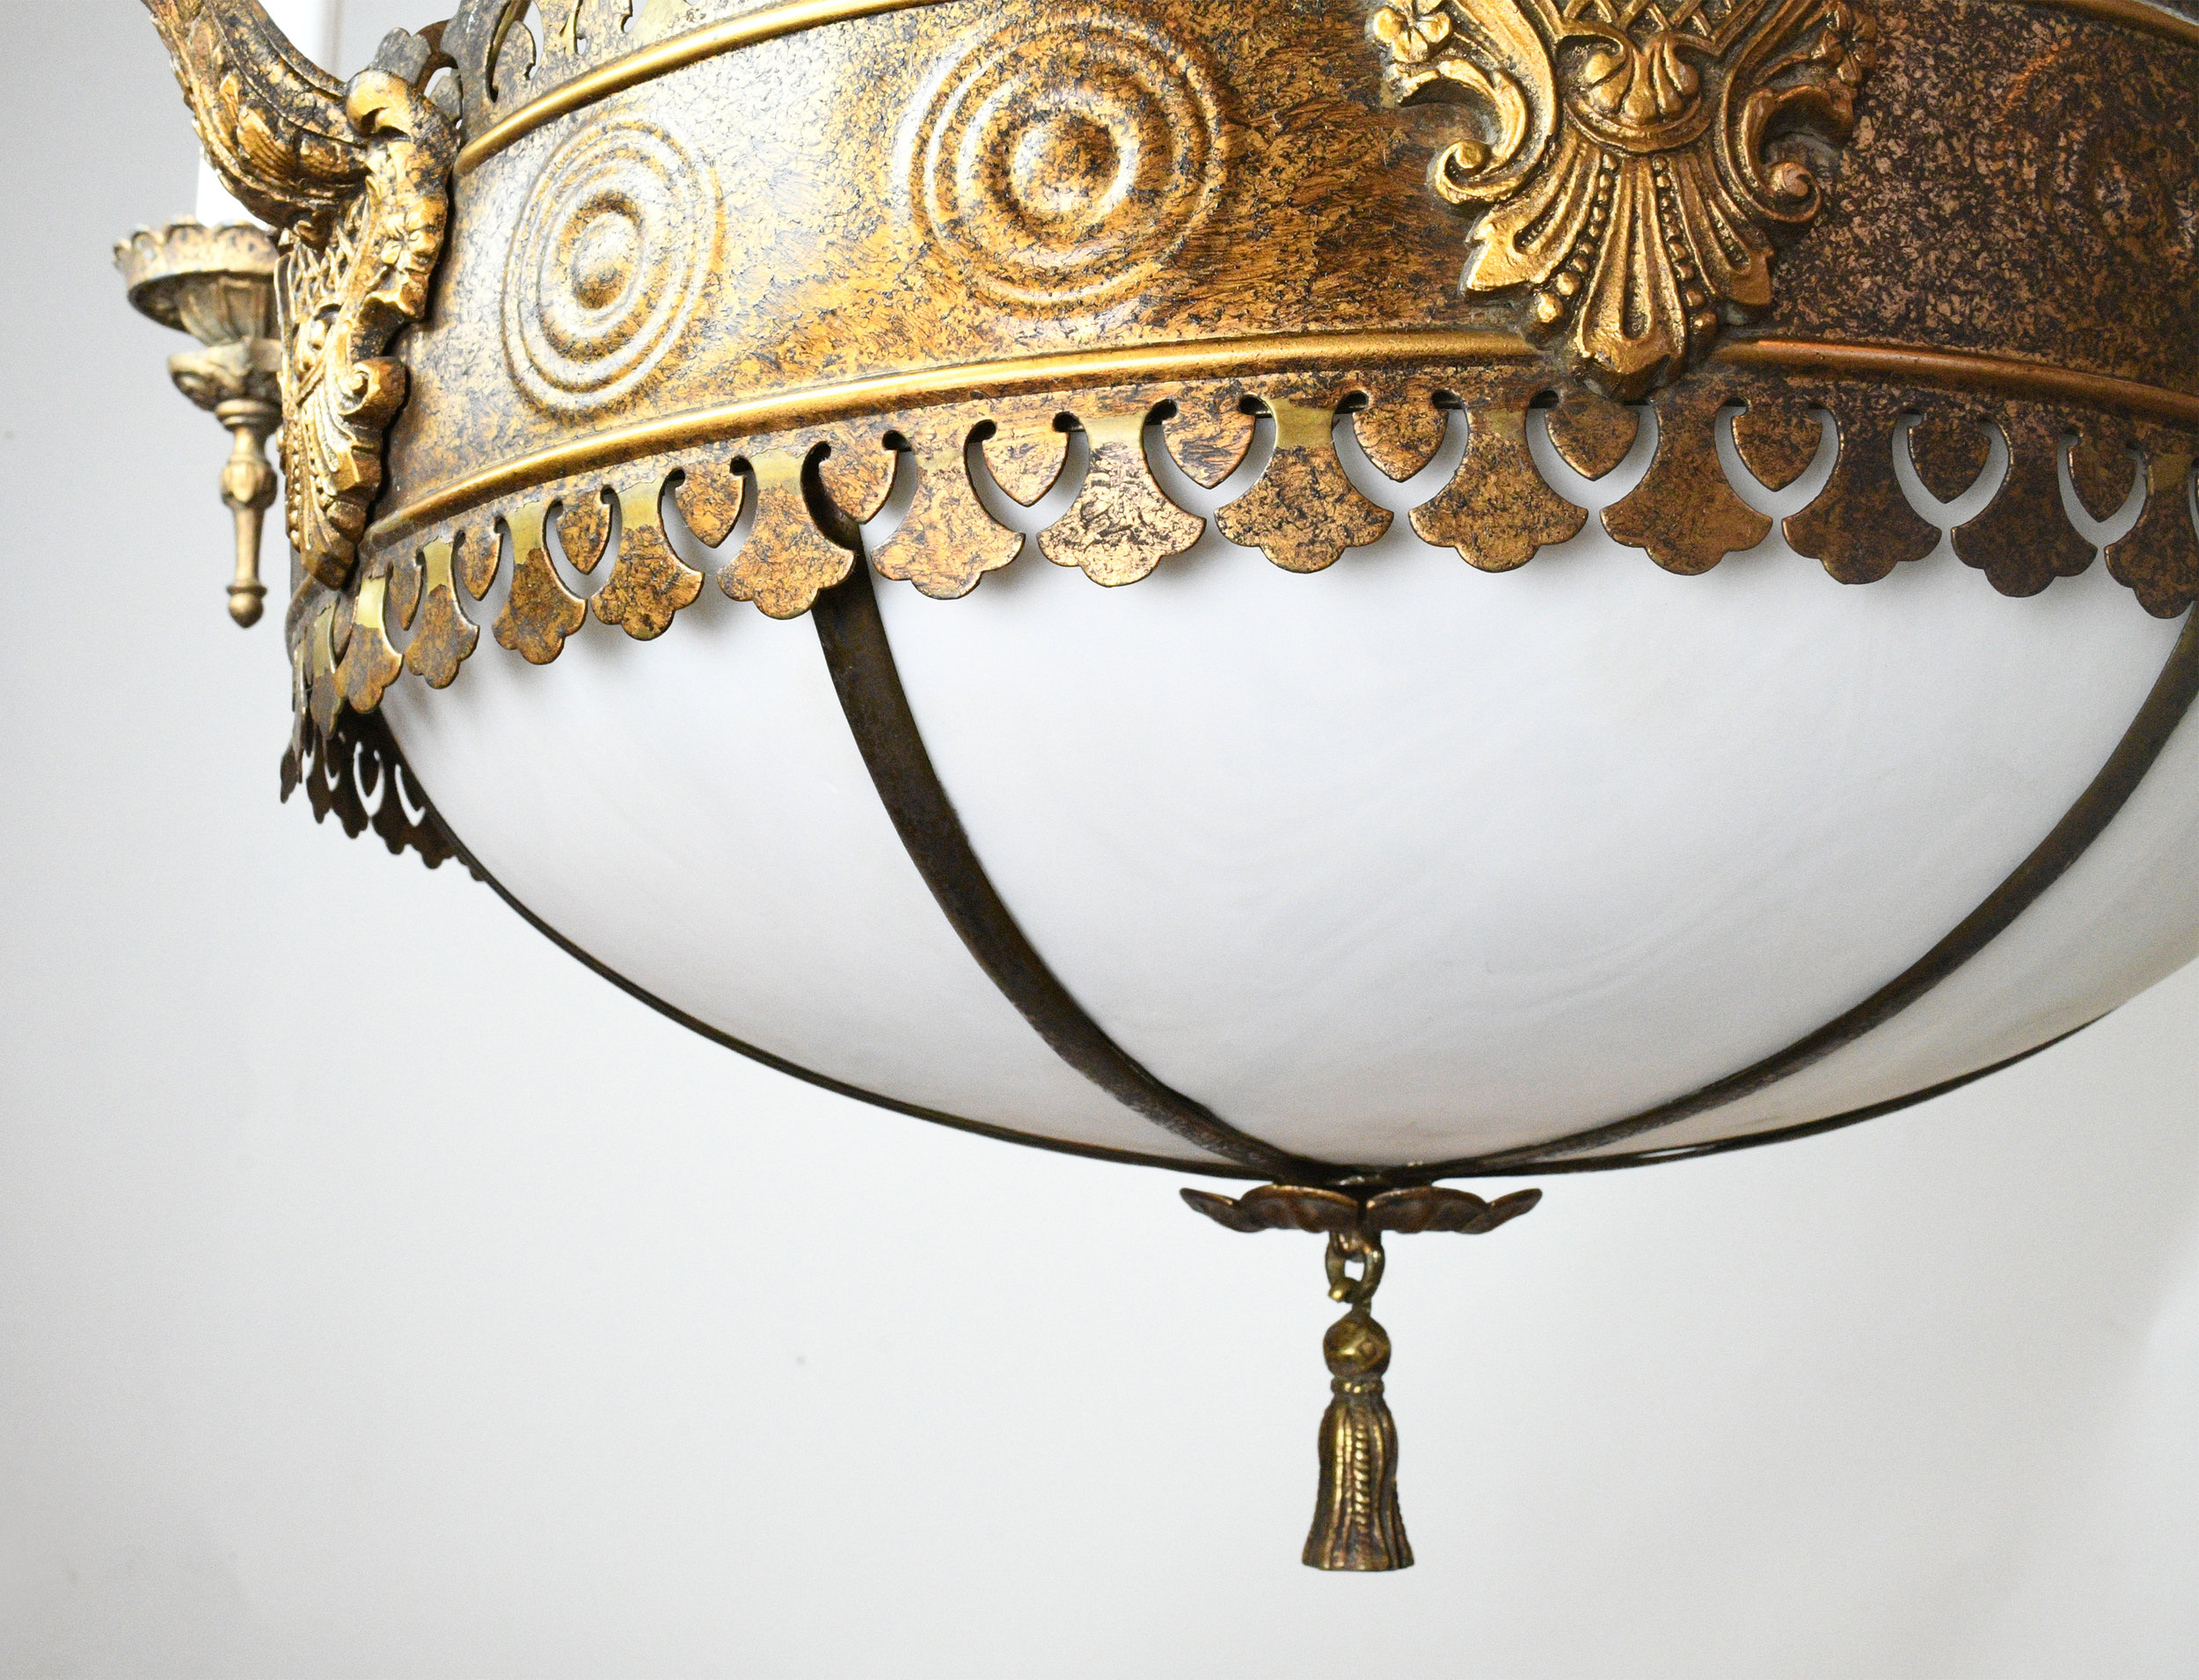 47529-6-candle-tudor-brass-chand-with-bent-glass-detail-12.jpg